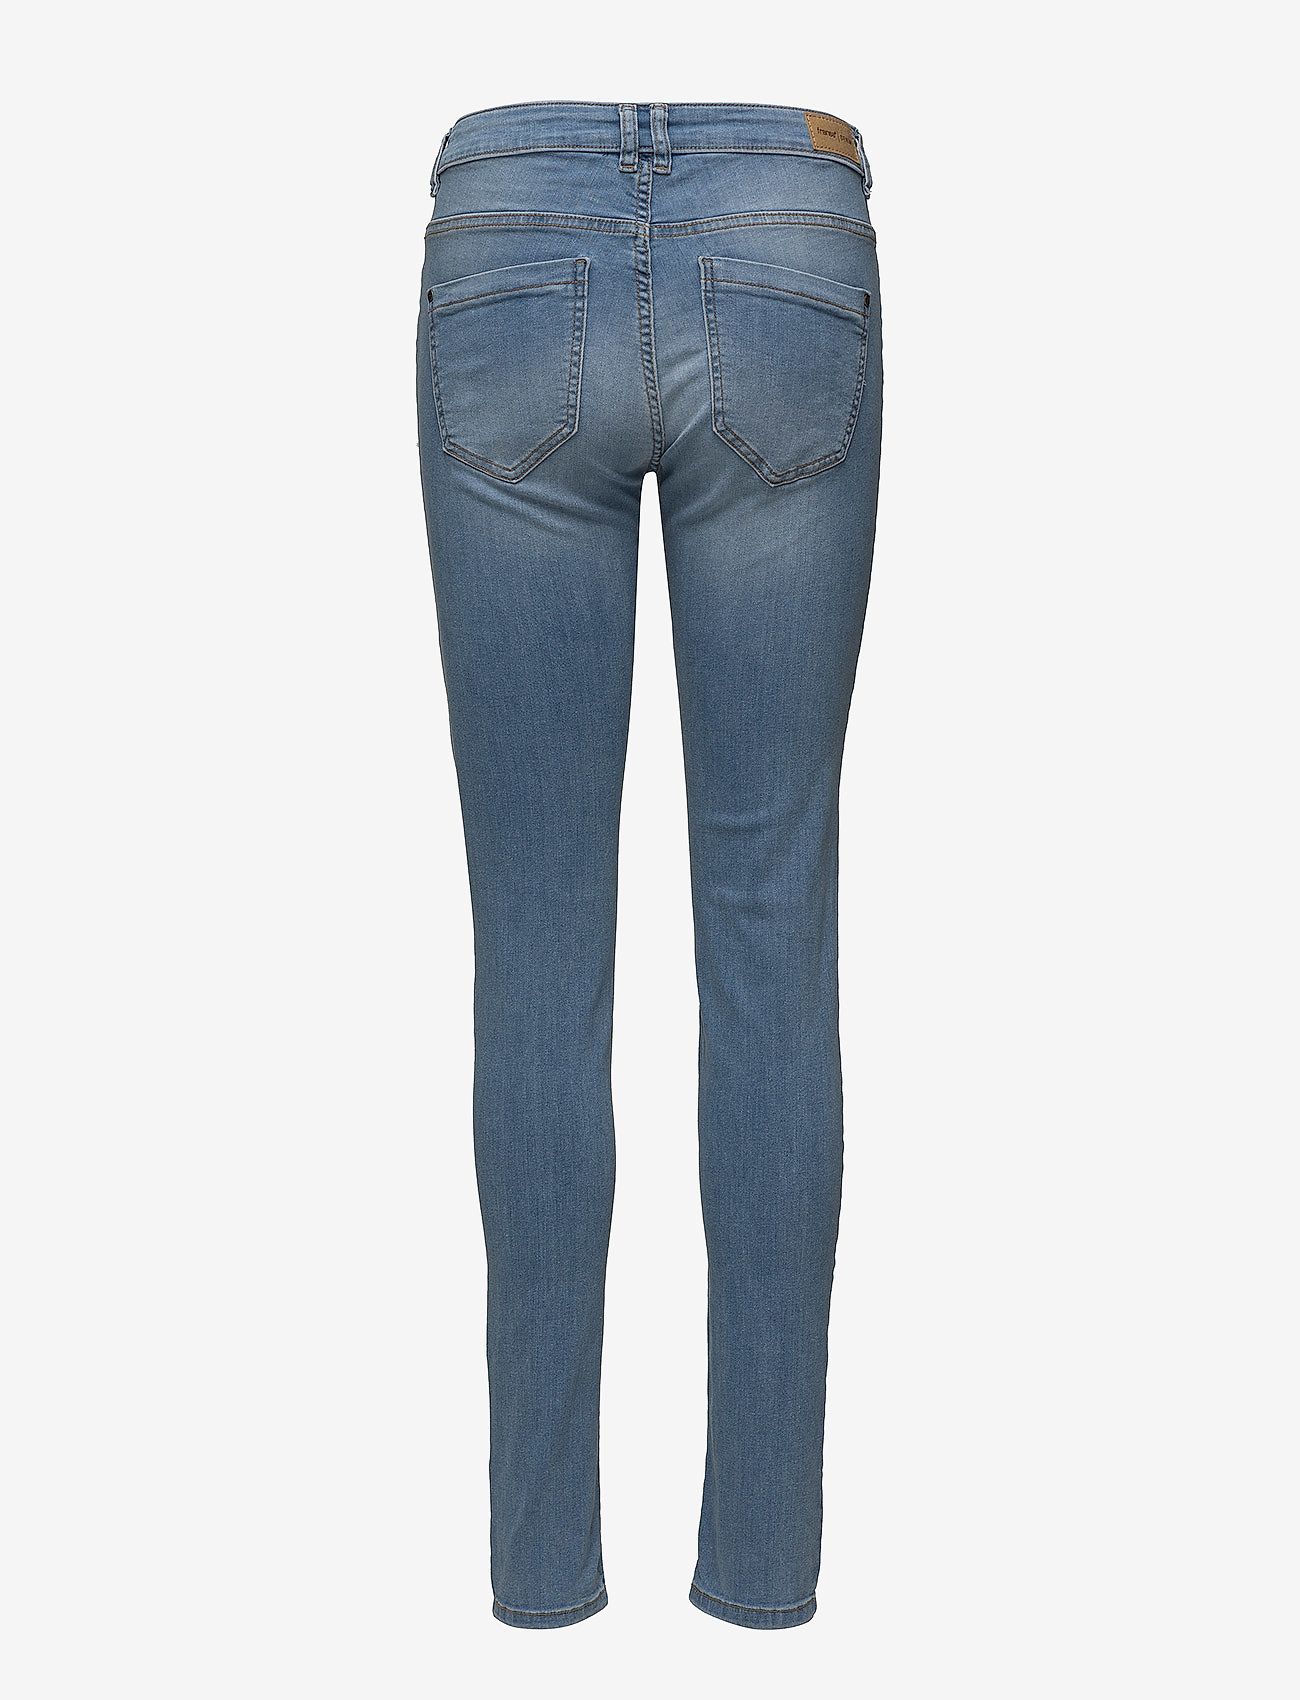 Fransa Zoza 1 Jeans - Cool Blue Denim